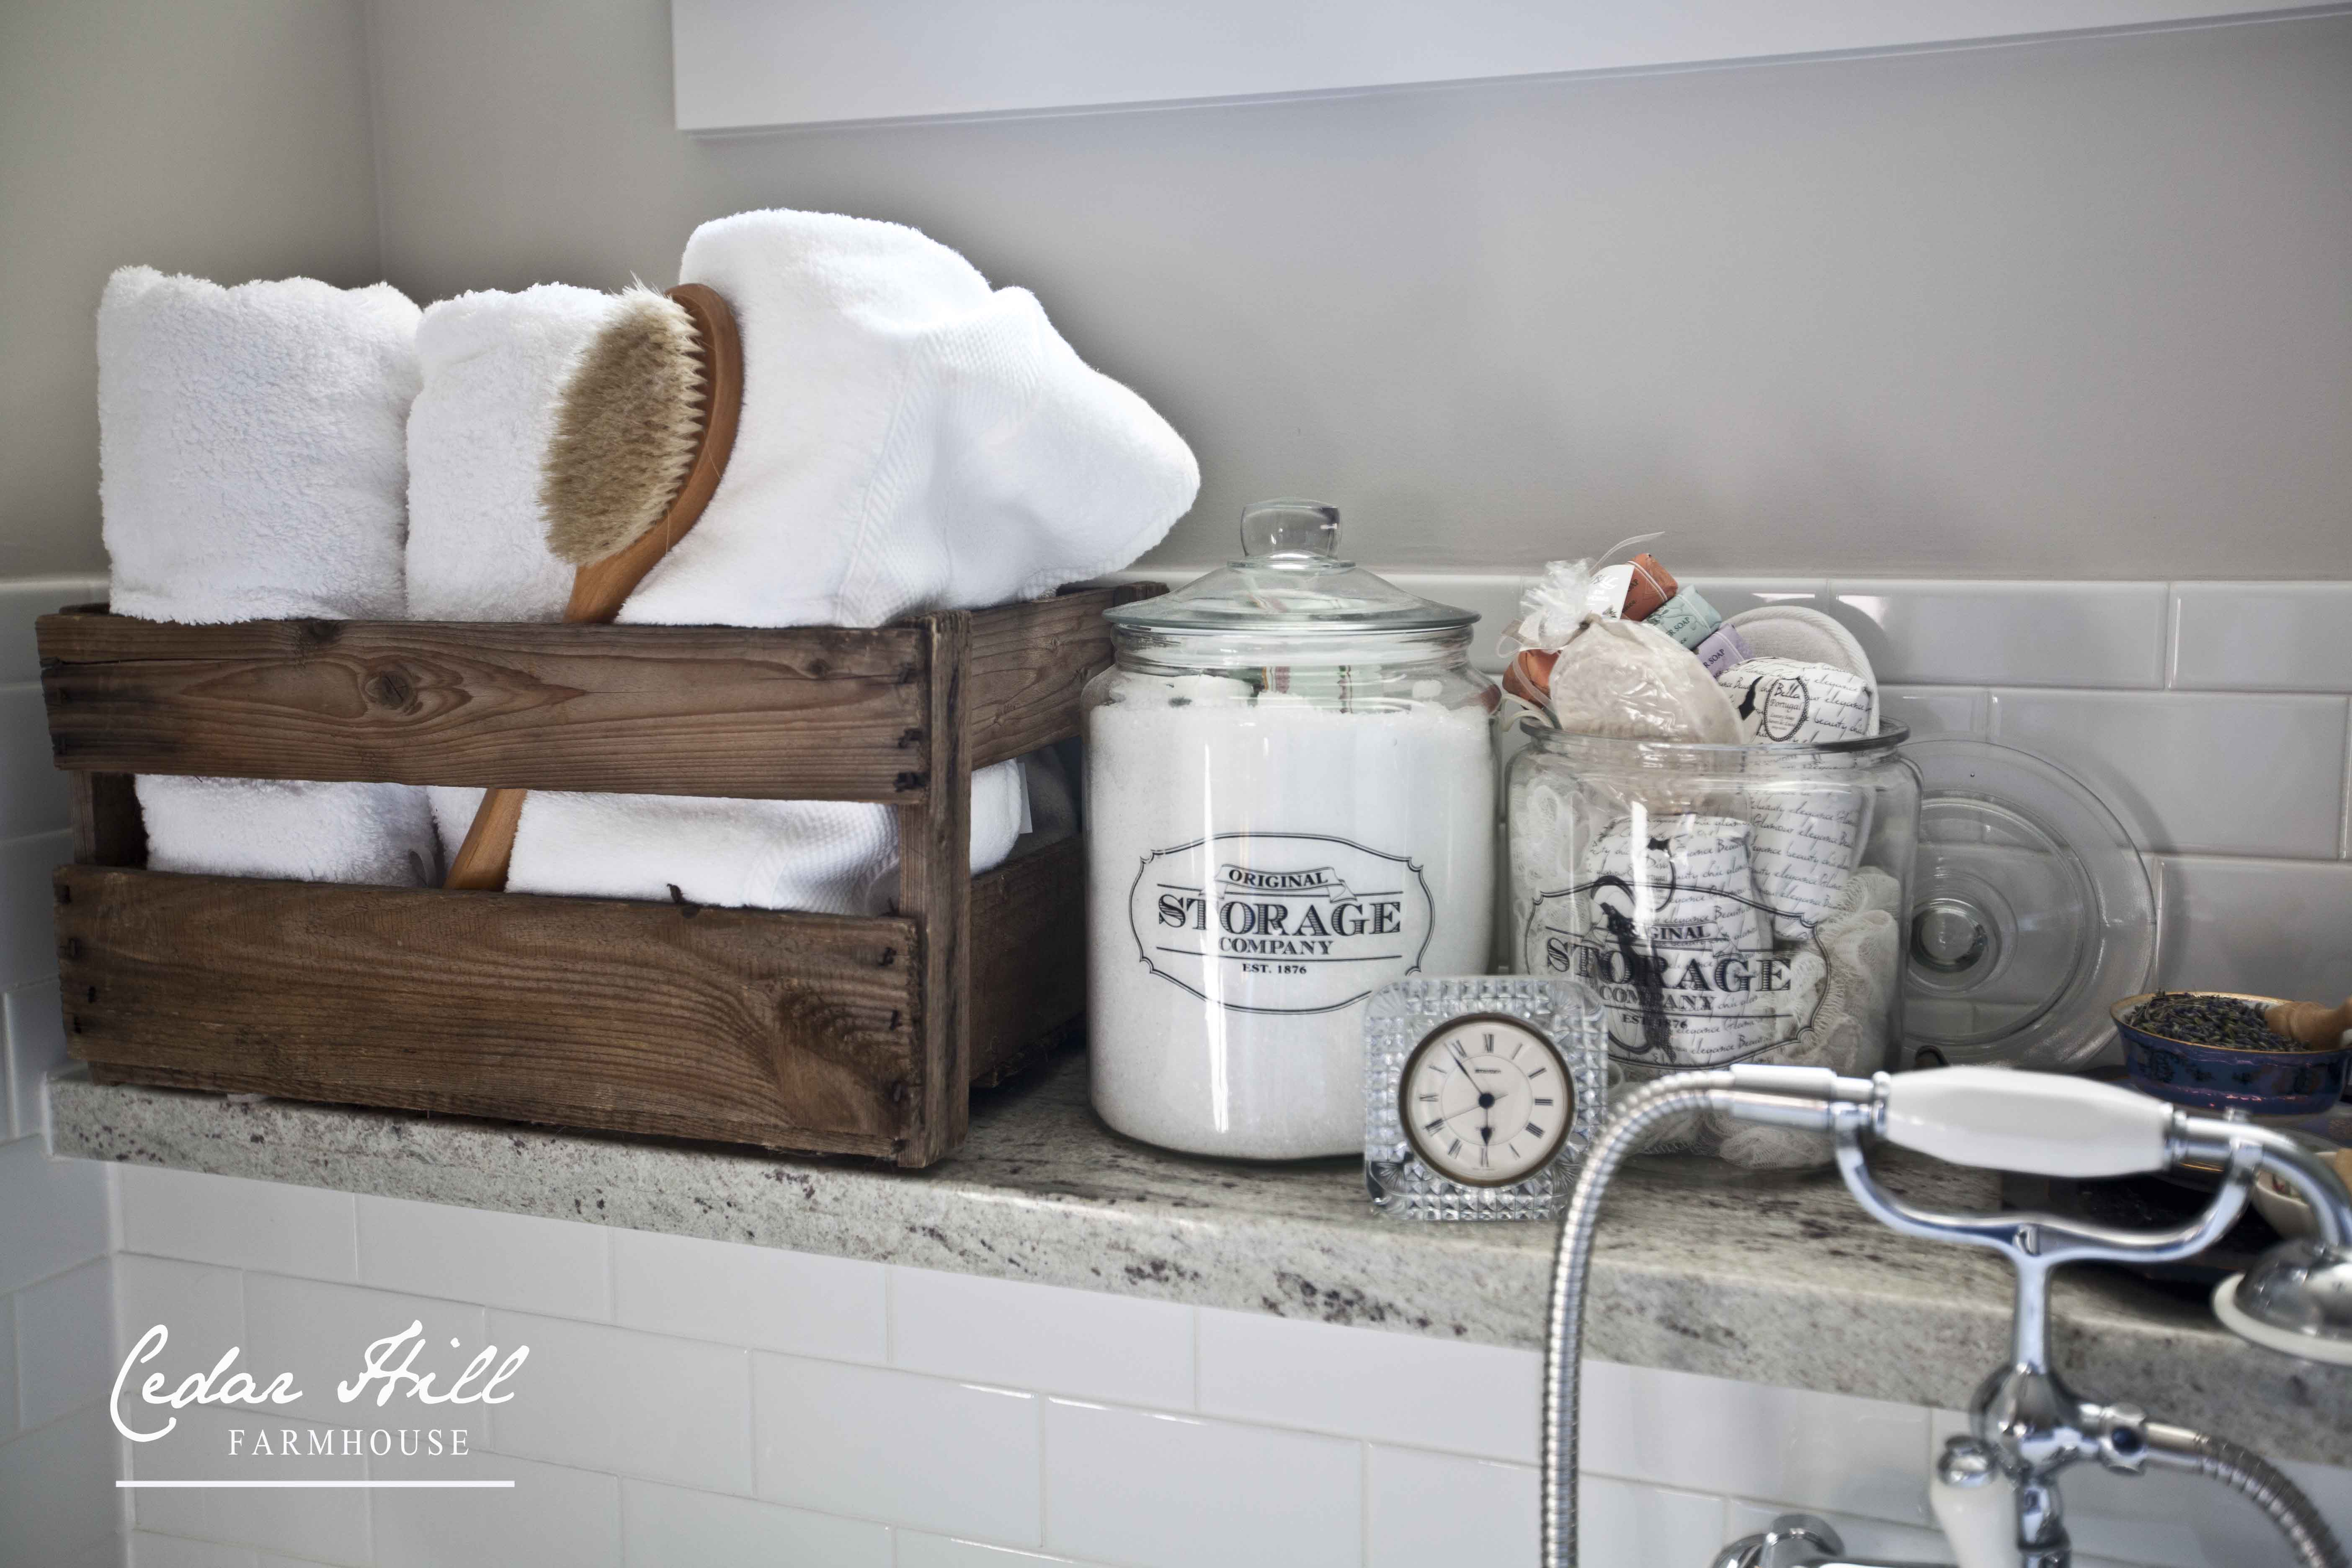 Pedestal tub with towels and soaps